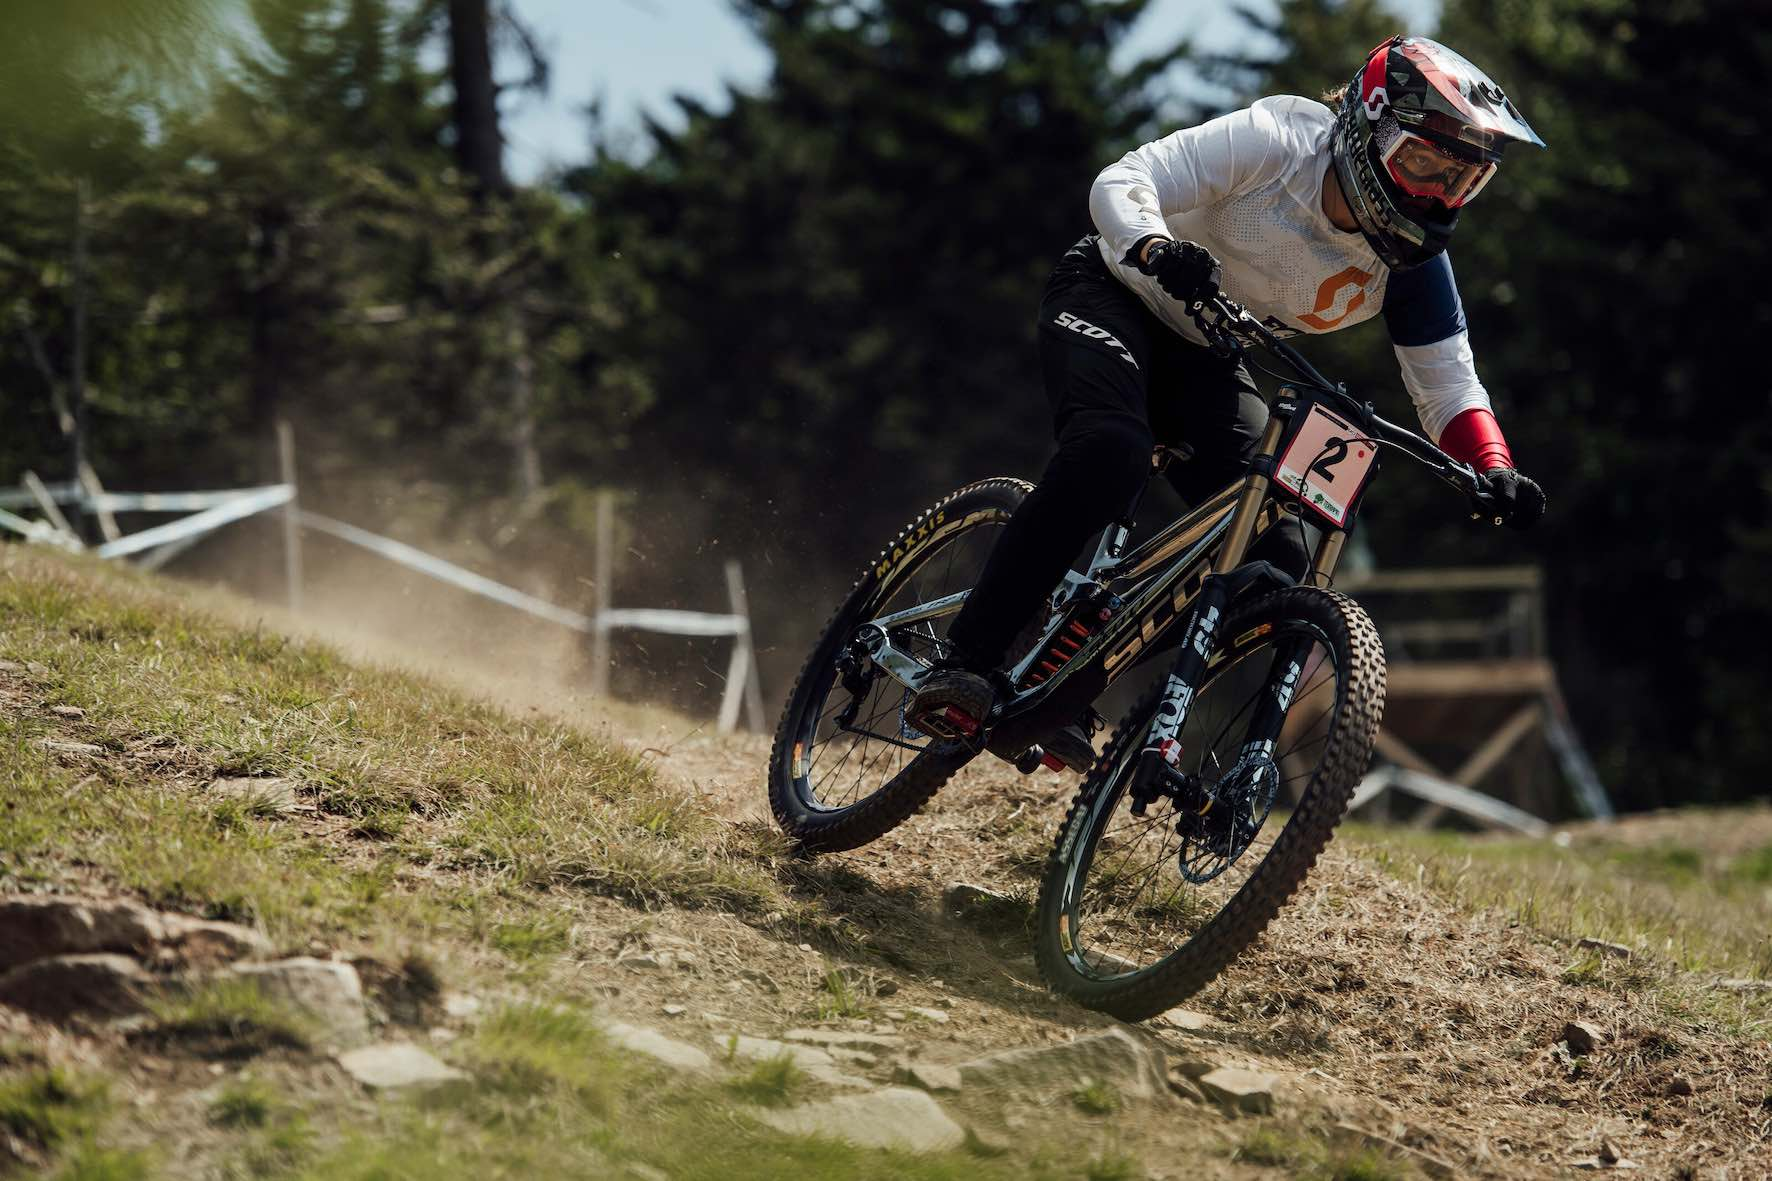 Marine Cabirou racing the 2019 UCI Downhill MTB World Cup in Snowshoe